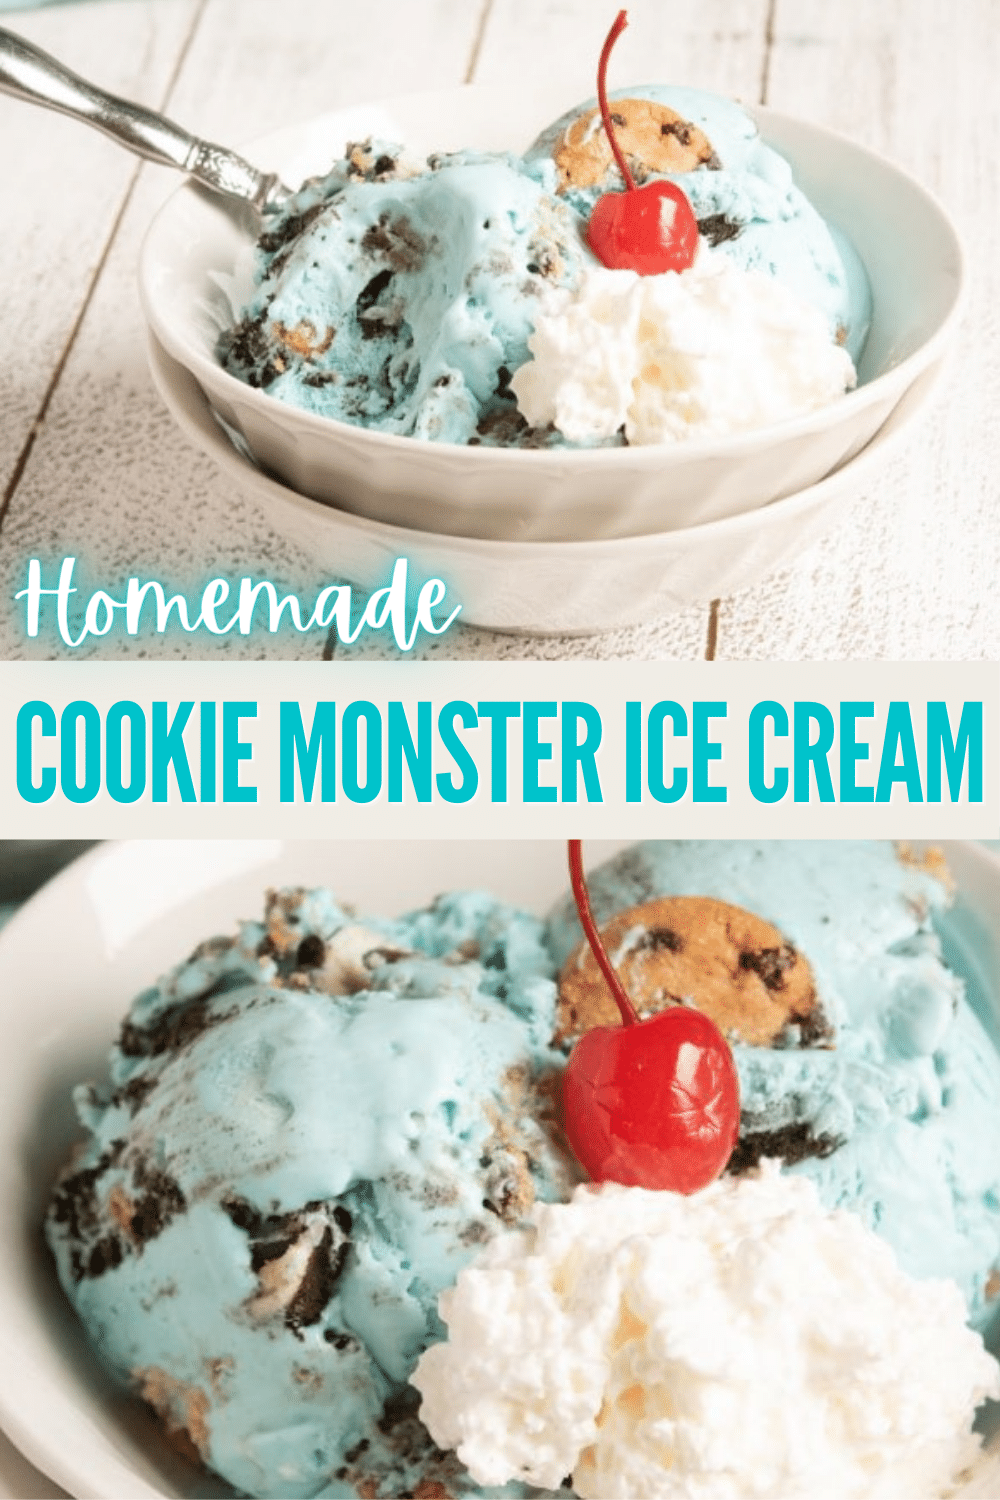 Homemade Cookie Monster Ice Cream is an easy no-churn recipe that is blue and full of cookies. Perfect dessert for birthday parties or a hot summer day. #nochurnicecream #cookiemonster #icecream via @wondermomwannab